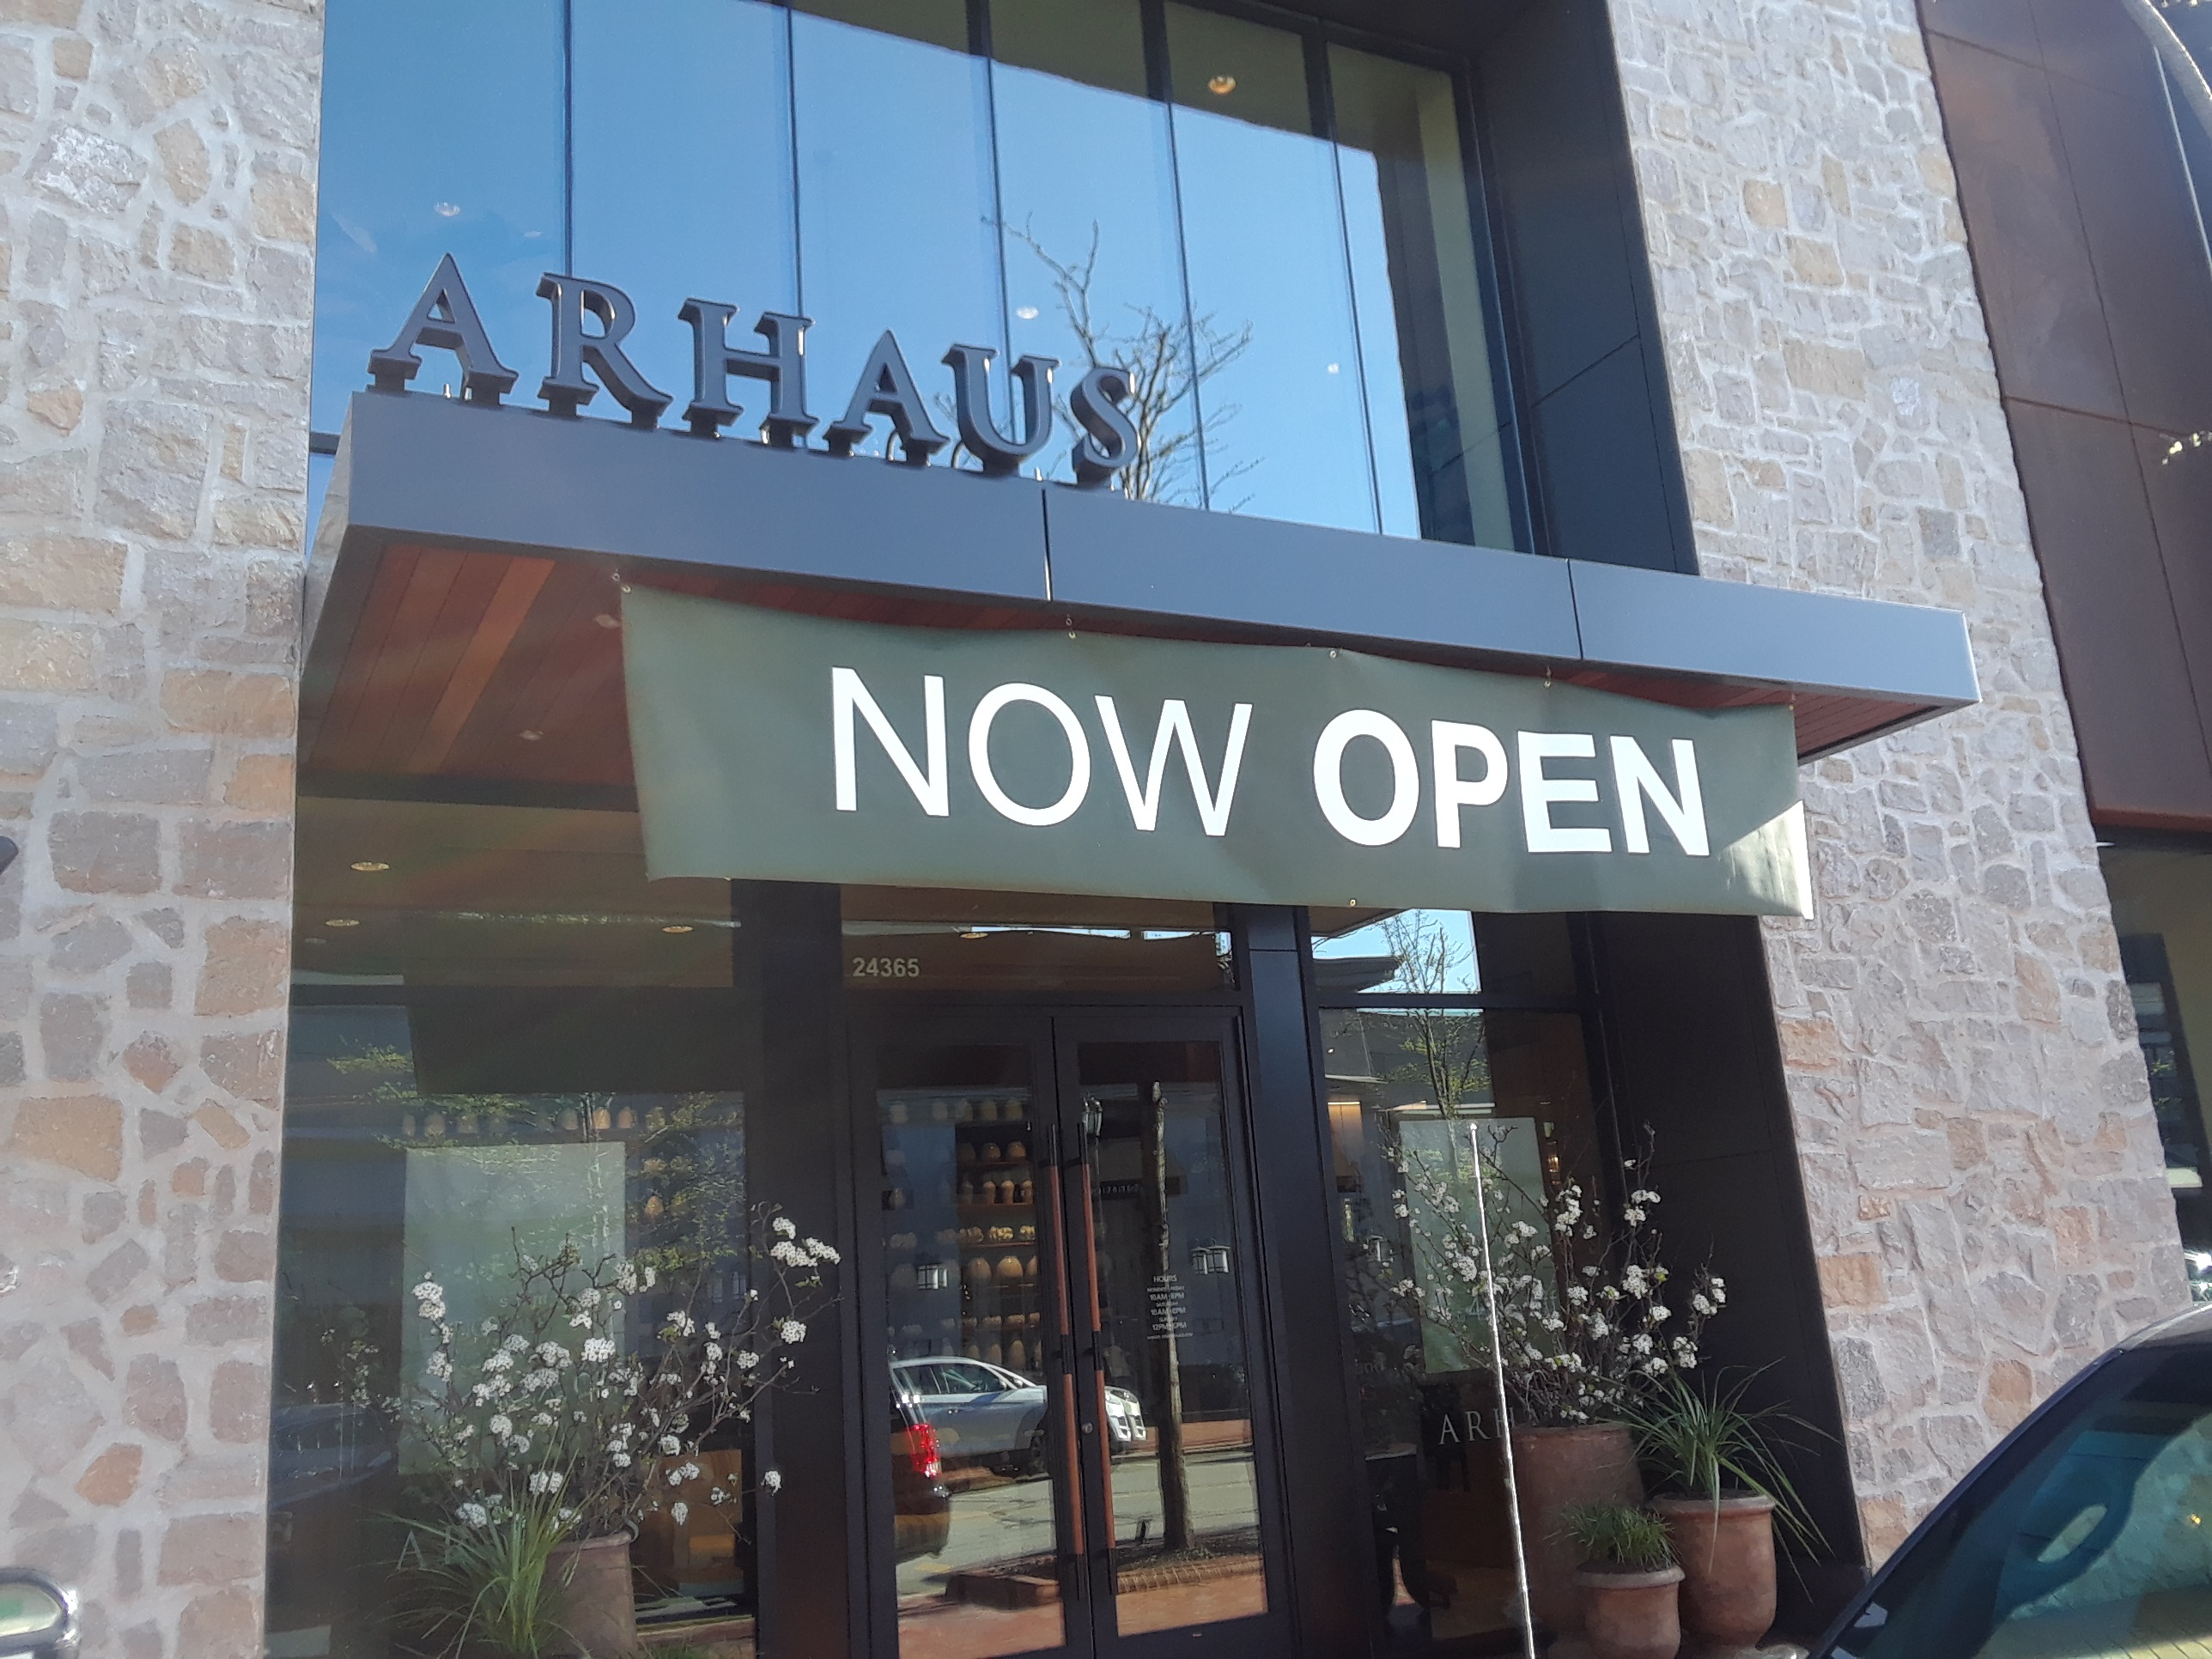 Arhaus Expands Ne Ohio Furniture Chain With New Concept Cleveland Com